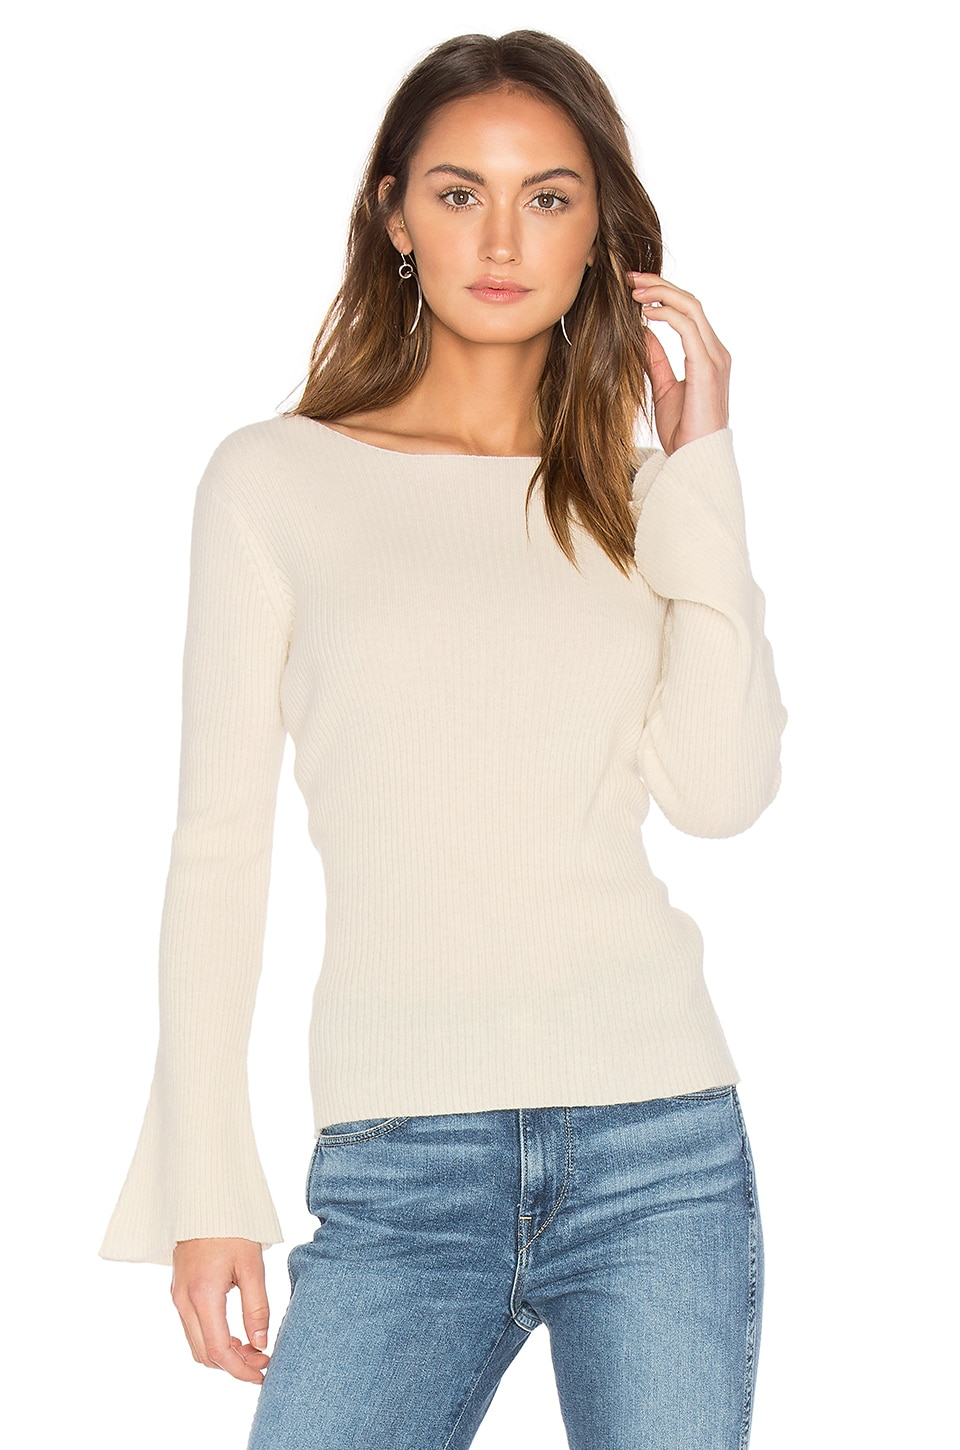 Central Park West Salzburg Pullover Cashmere Sweater in Winter White